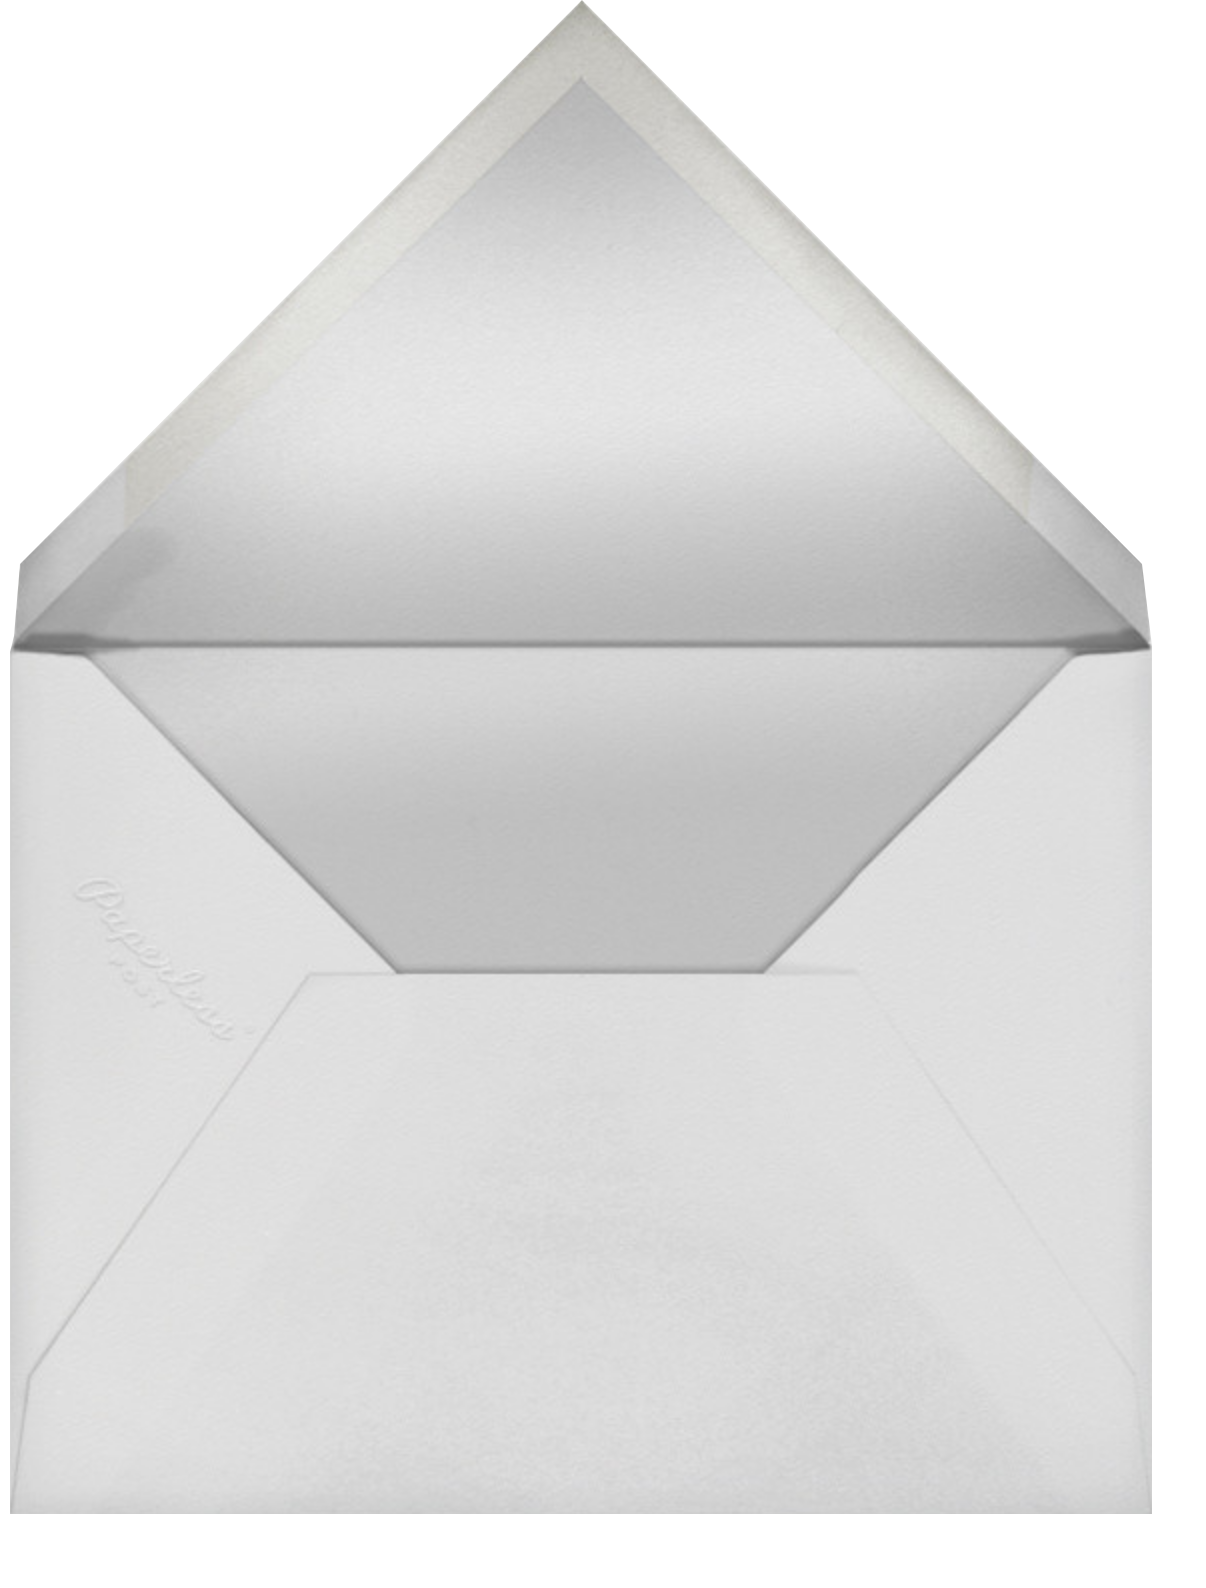 You Mean the World to Me - Pacific - Paperless Post - Valentine's Day - envelope back